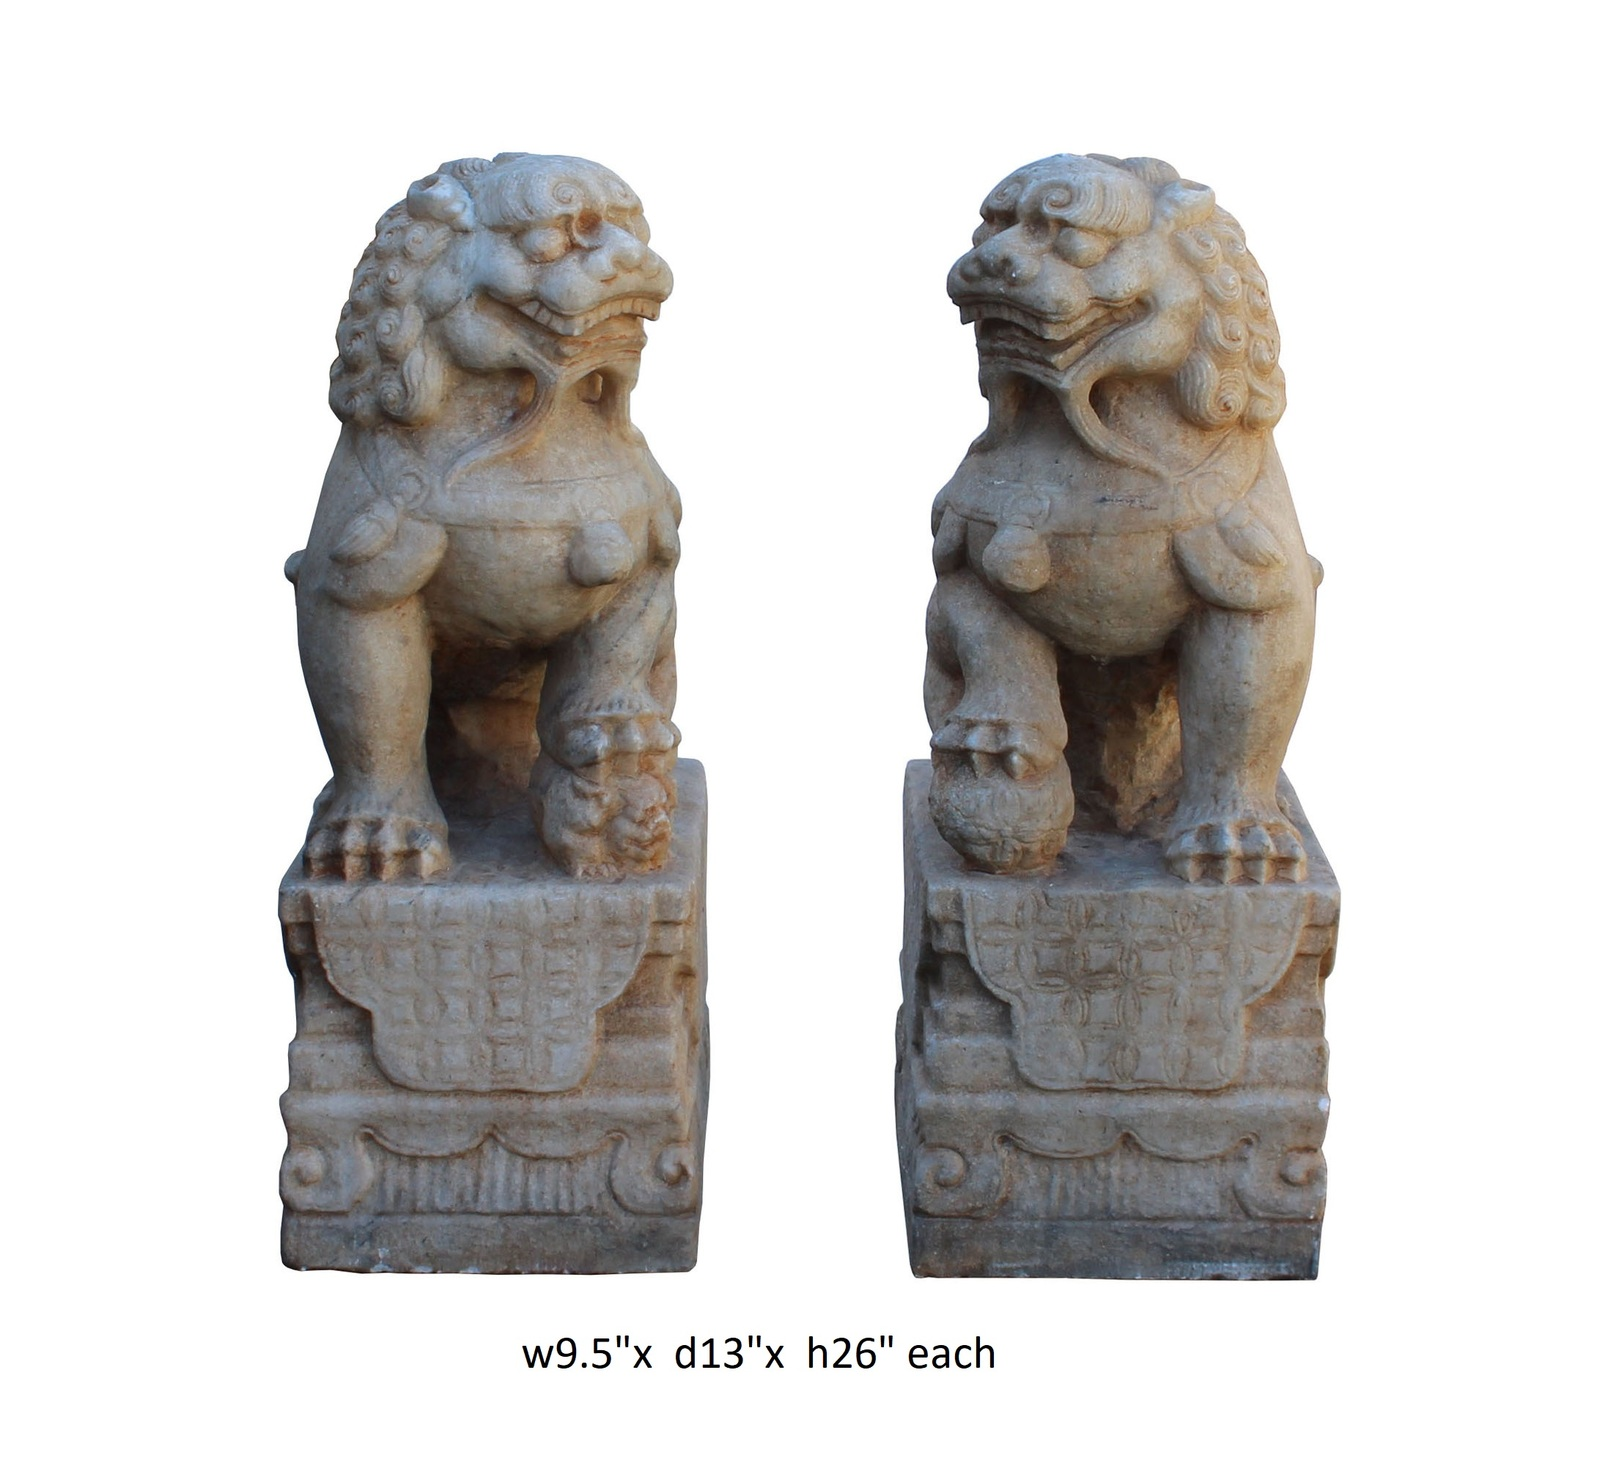 Chinese Pair Off White Marble Stone Fengshui Foo Dogs Statues cs3224 image 6